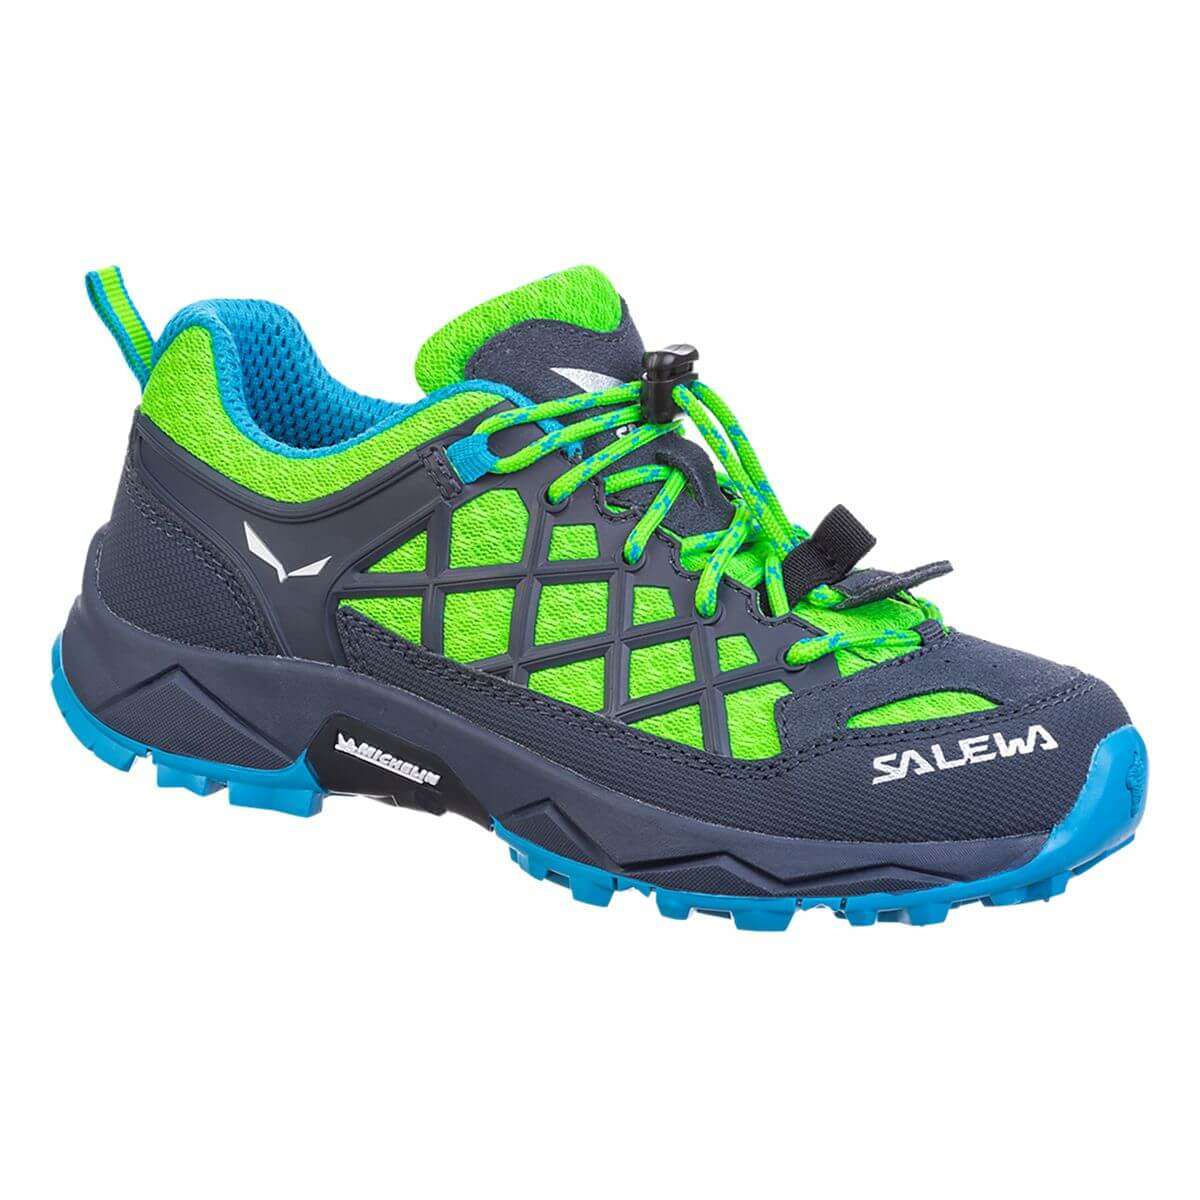 Salewa JR Wildfire J fluo green/blue danube